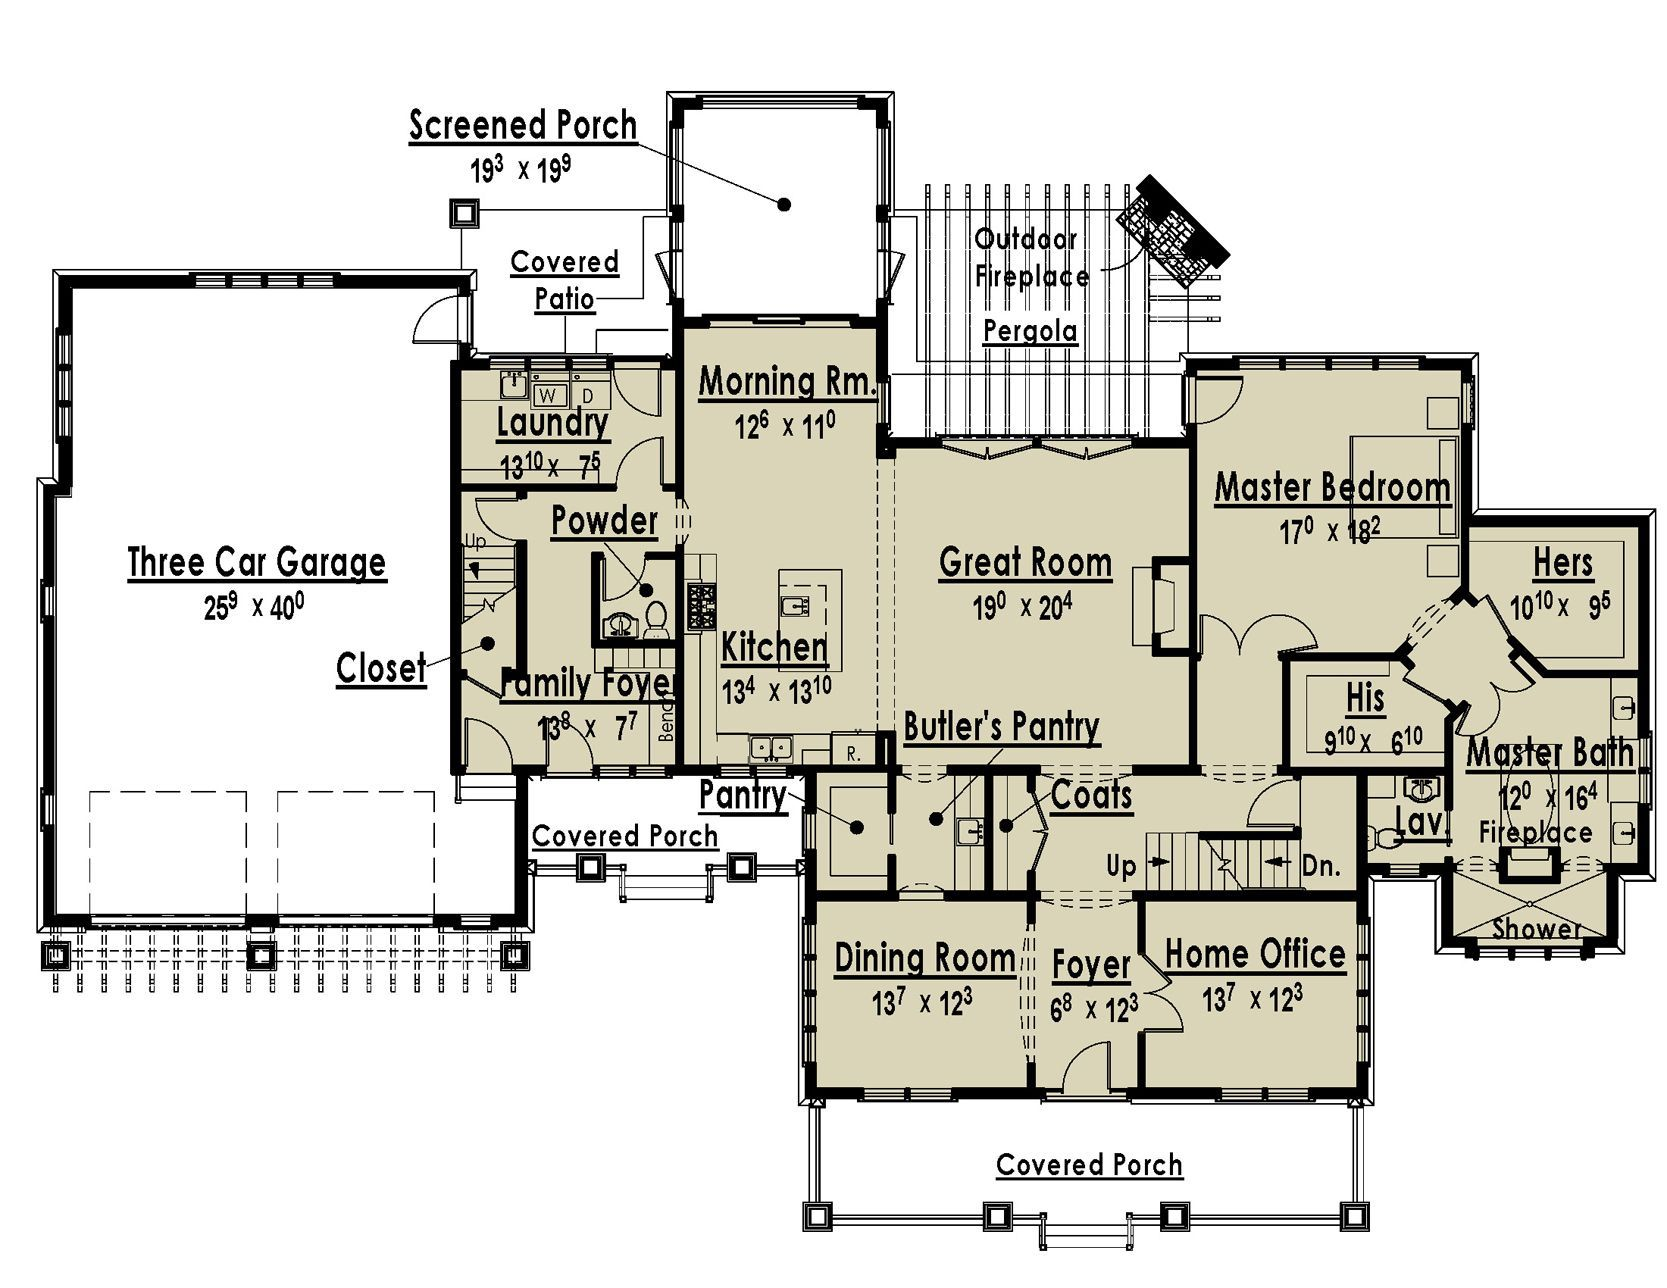 House Plans With Two Master Suites On First Floor R55 In Amazing Furniture Design Ideas W Master Suite Floor Plan Bungalow Floor Plans Modular Home Floor Plans